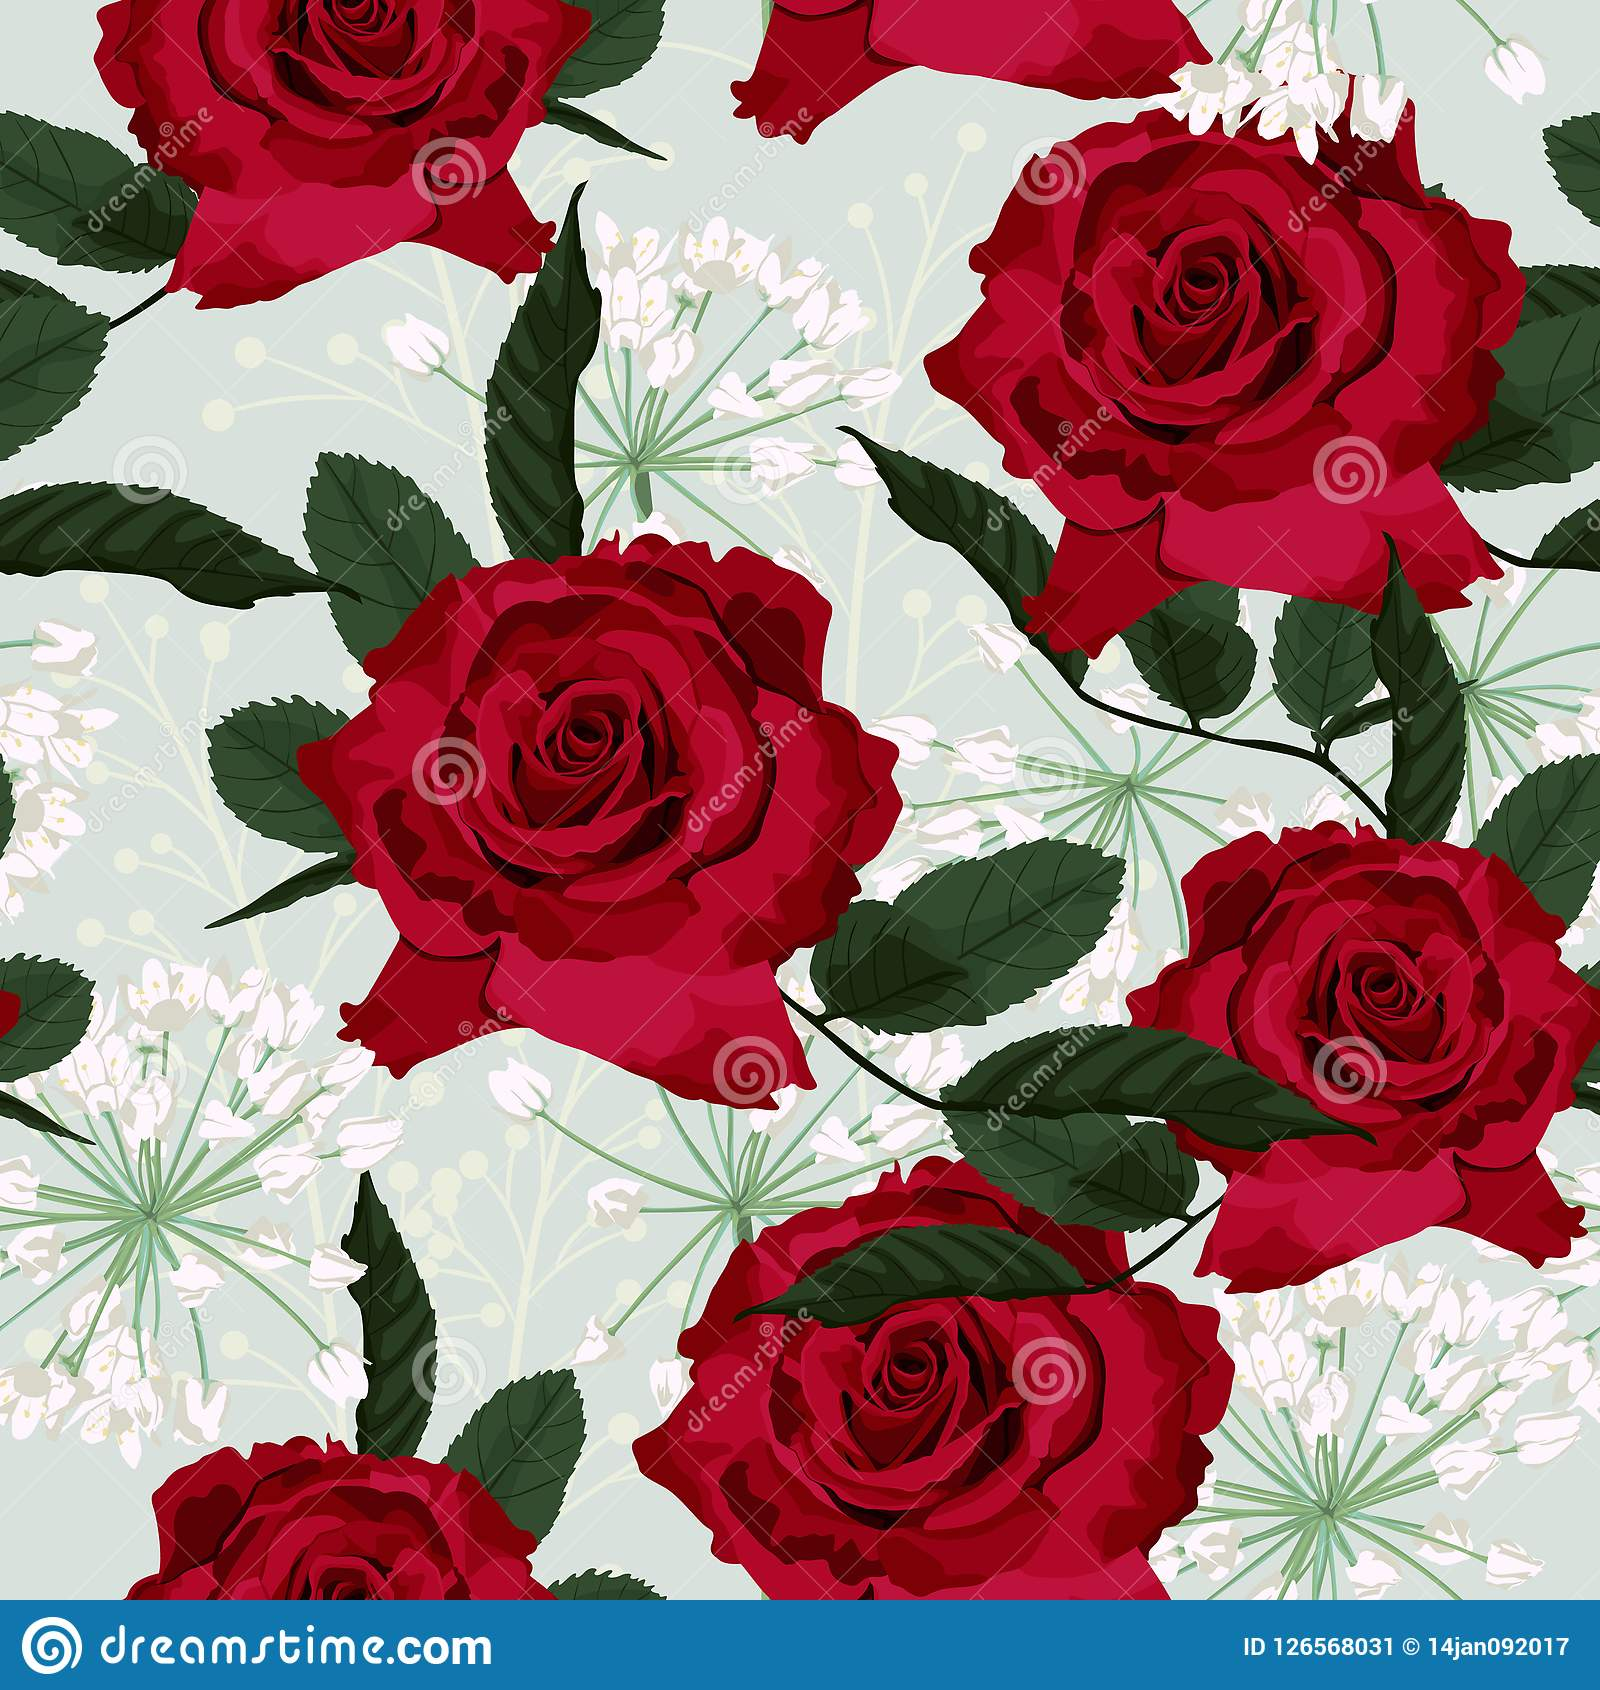 Seamless Floral Pattern With Red Roses And White Herbs On